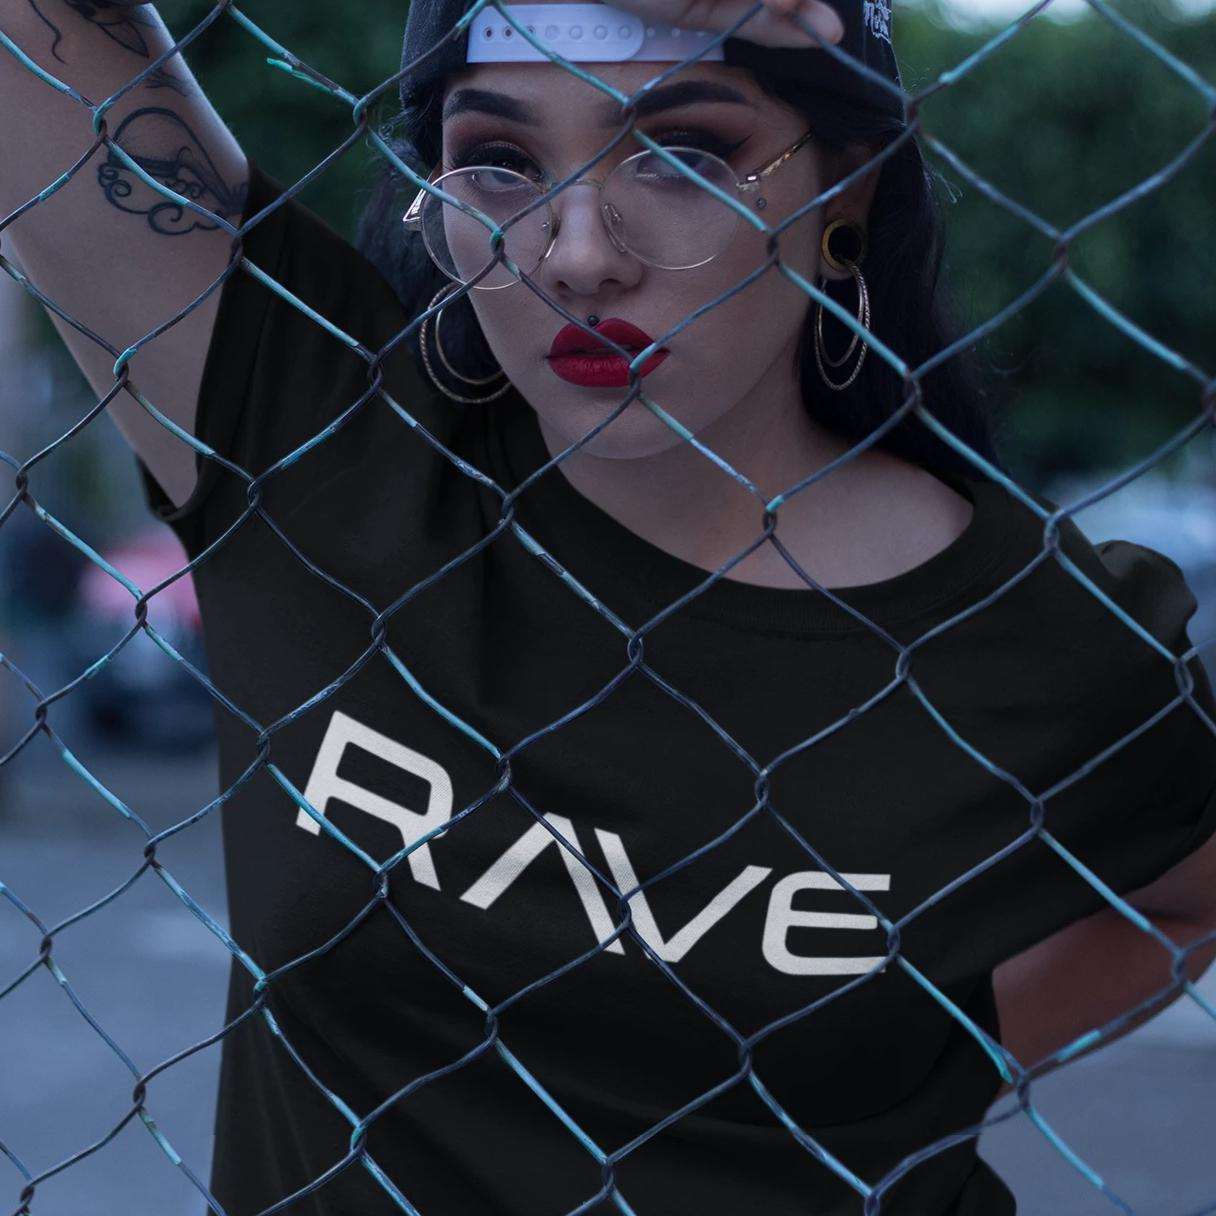 RAVE - Rave On!® Black T-Shirt - Herren Premiumshirt Herren Premium Shirt - Rave On!® der Club & Techno Szene Shop für Coole Junge Mode Streetwear Style & Fashion Outfits + Sexy Festival 420 Stuff